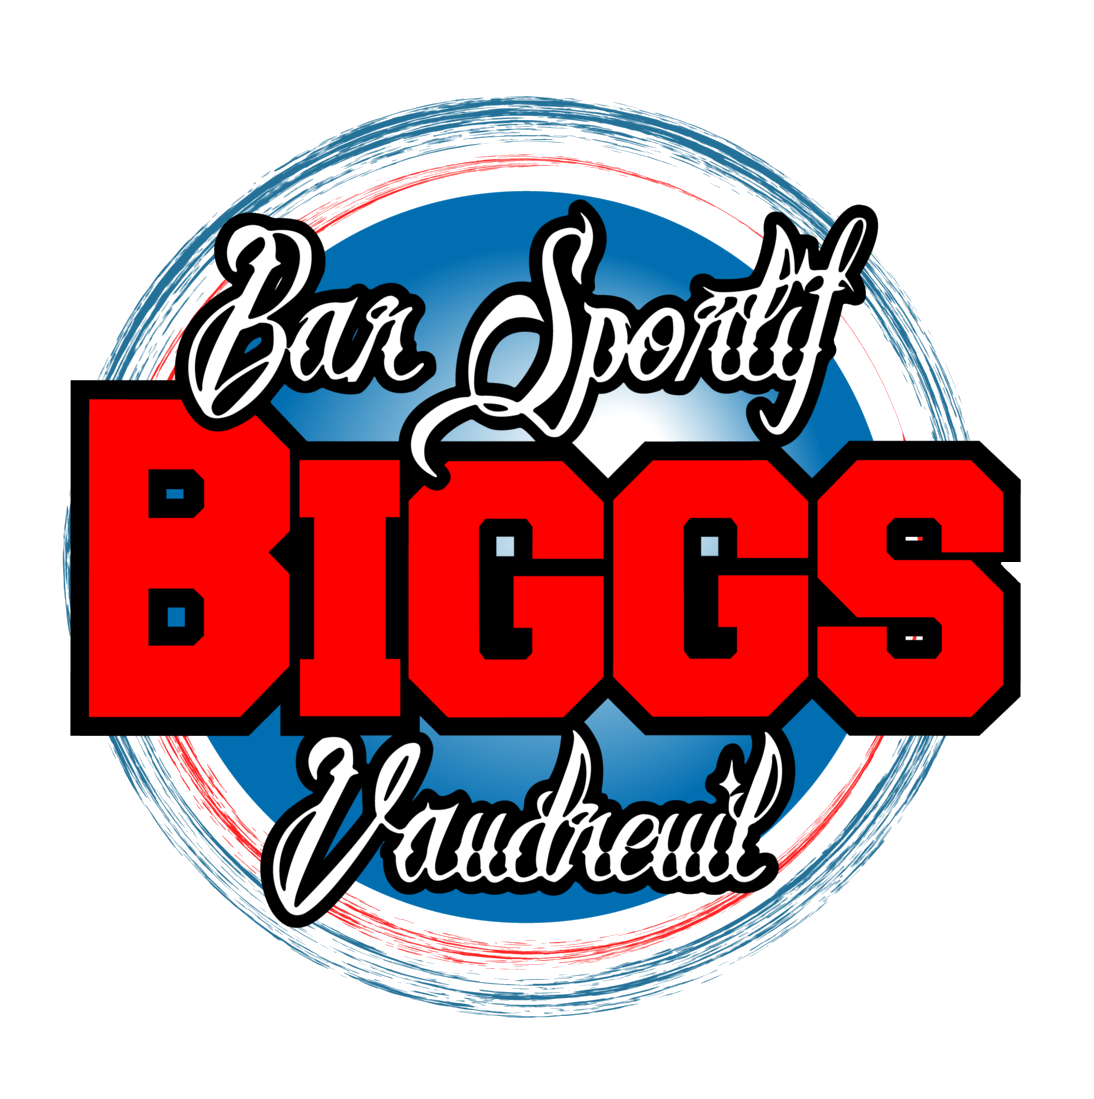 Bar Sportif Biggs